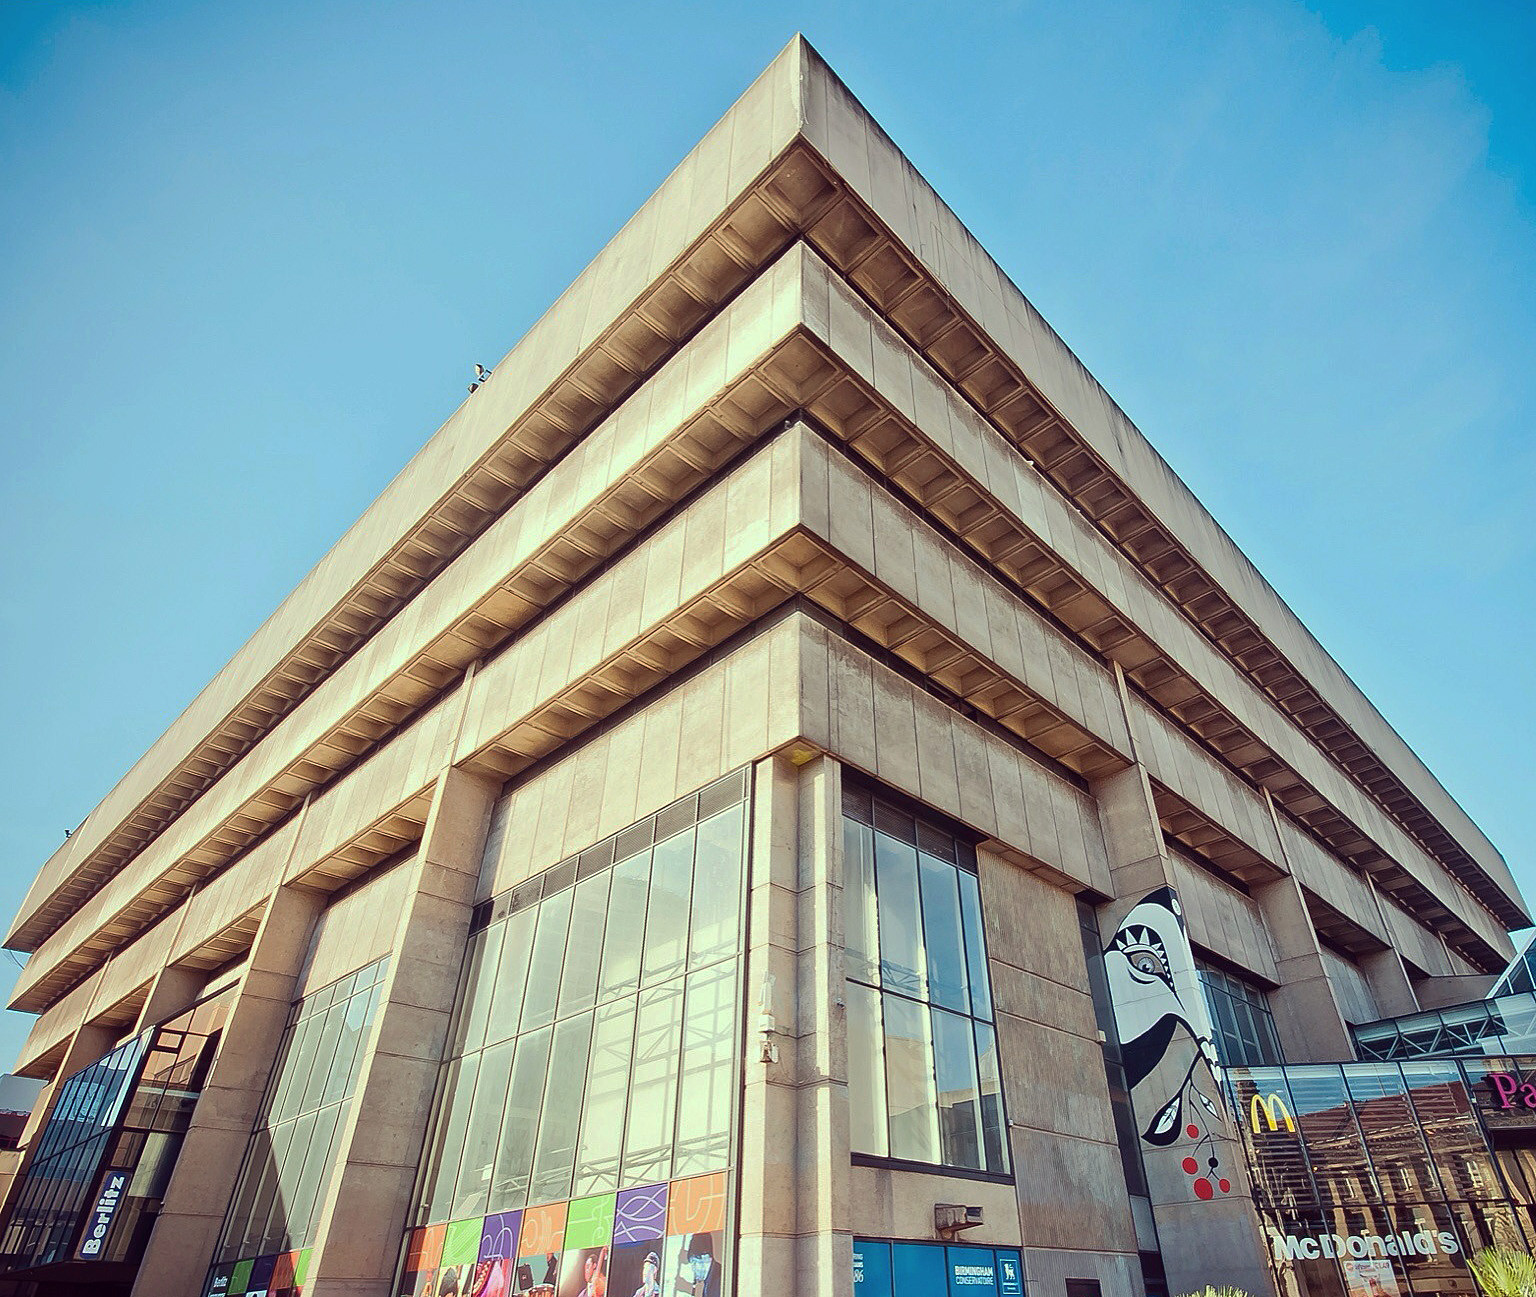 Demolition Begins On John Madin's Brutalist Former Library in Birmingham, The former library